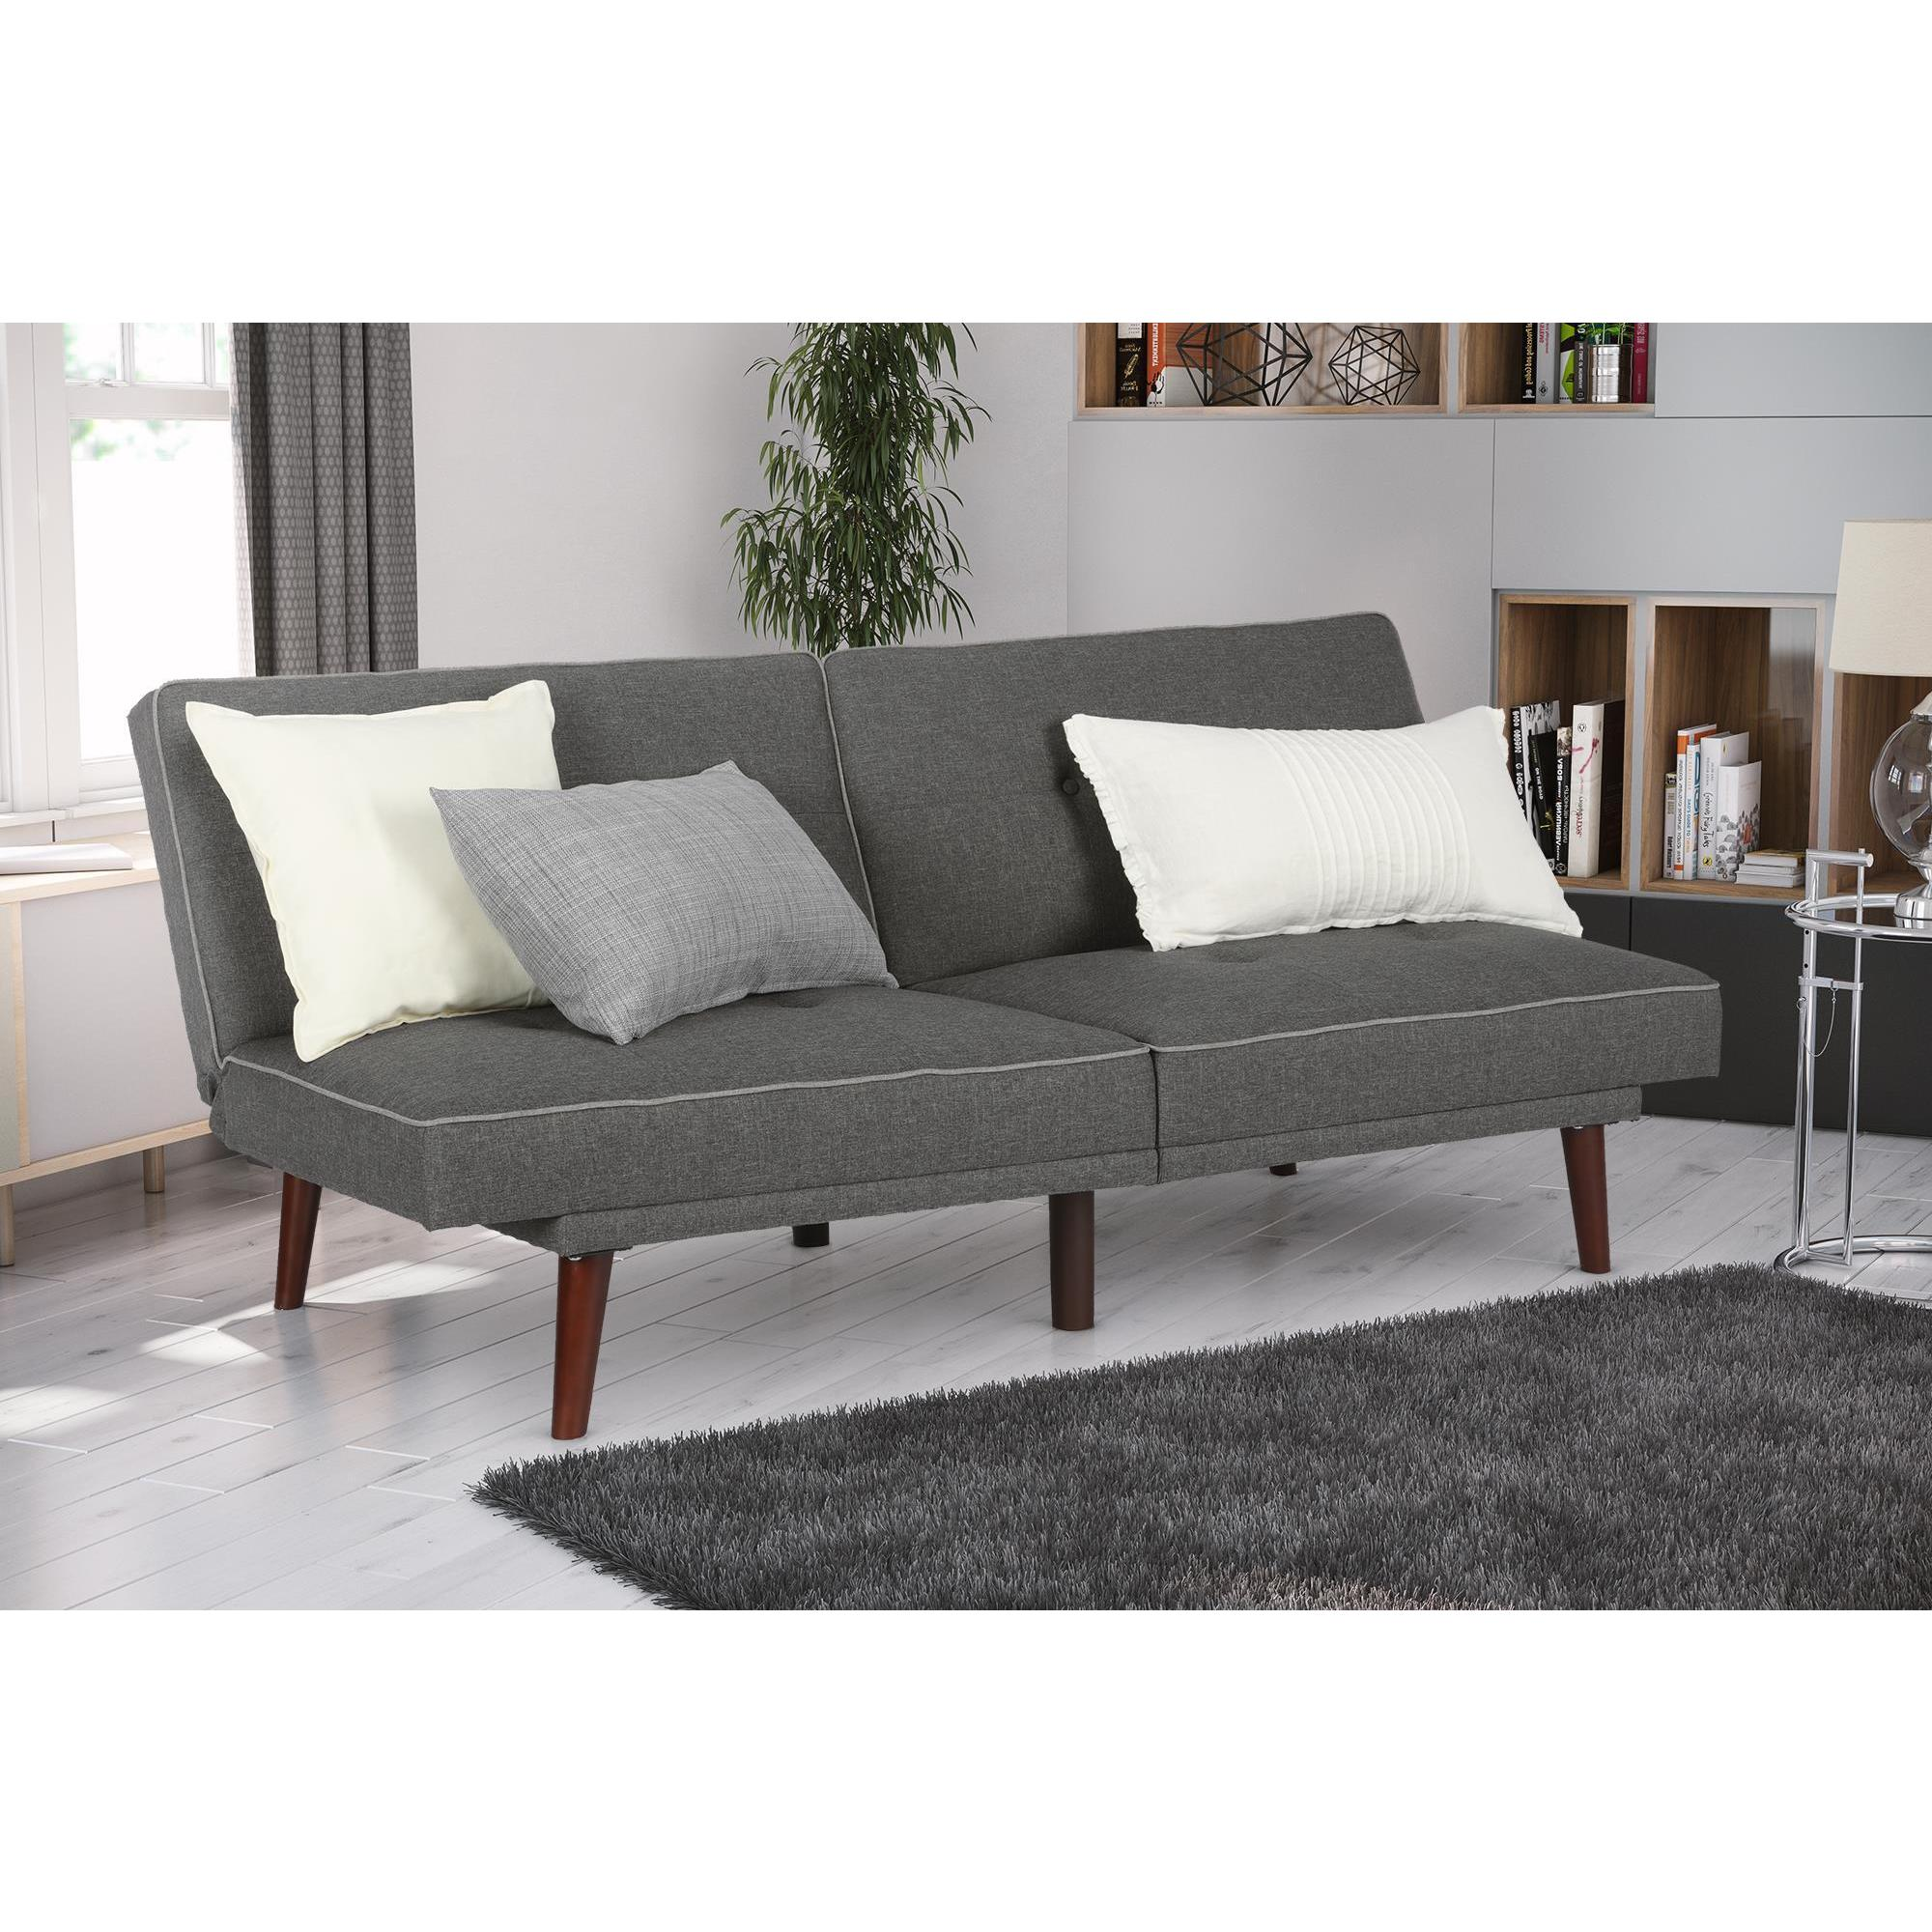 sofa loveseat liang futon ie kho for by artifort